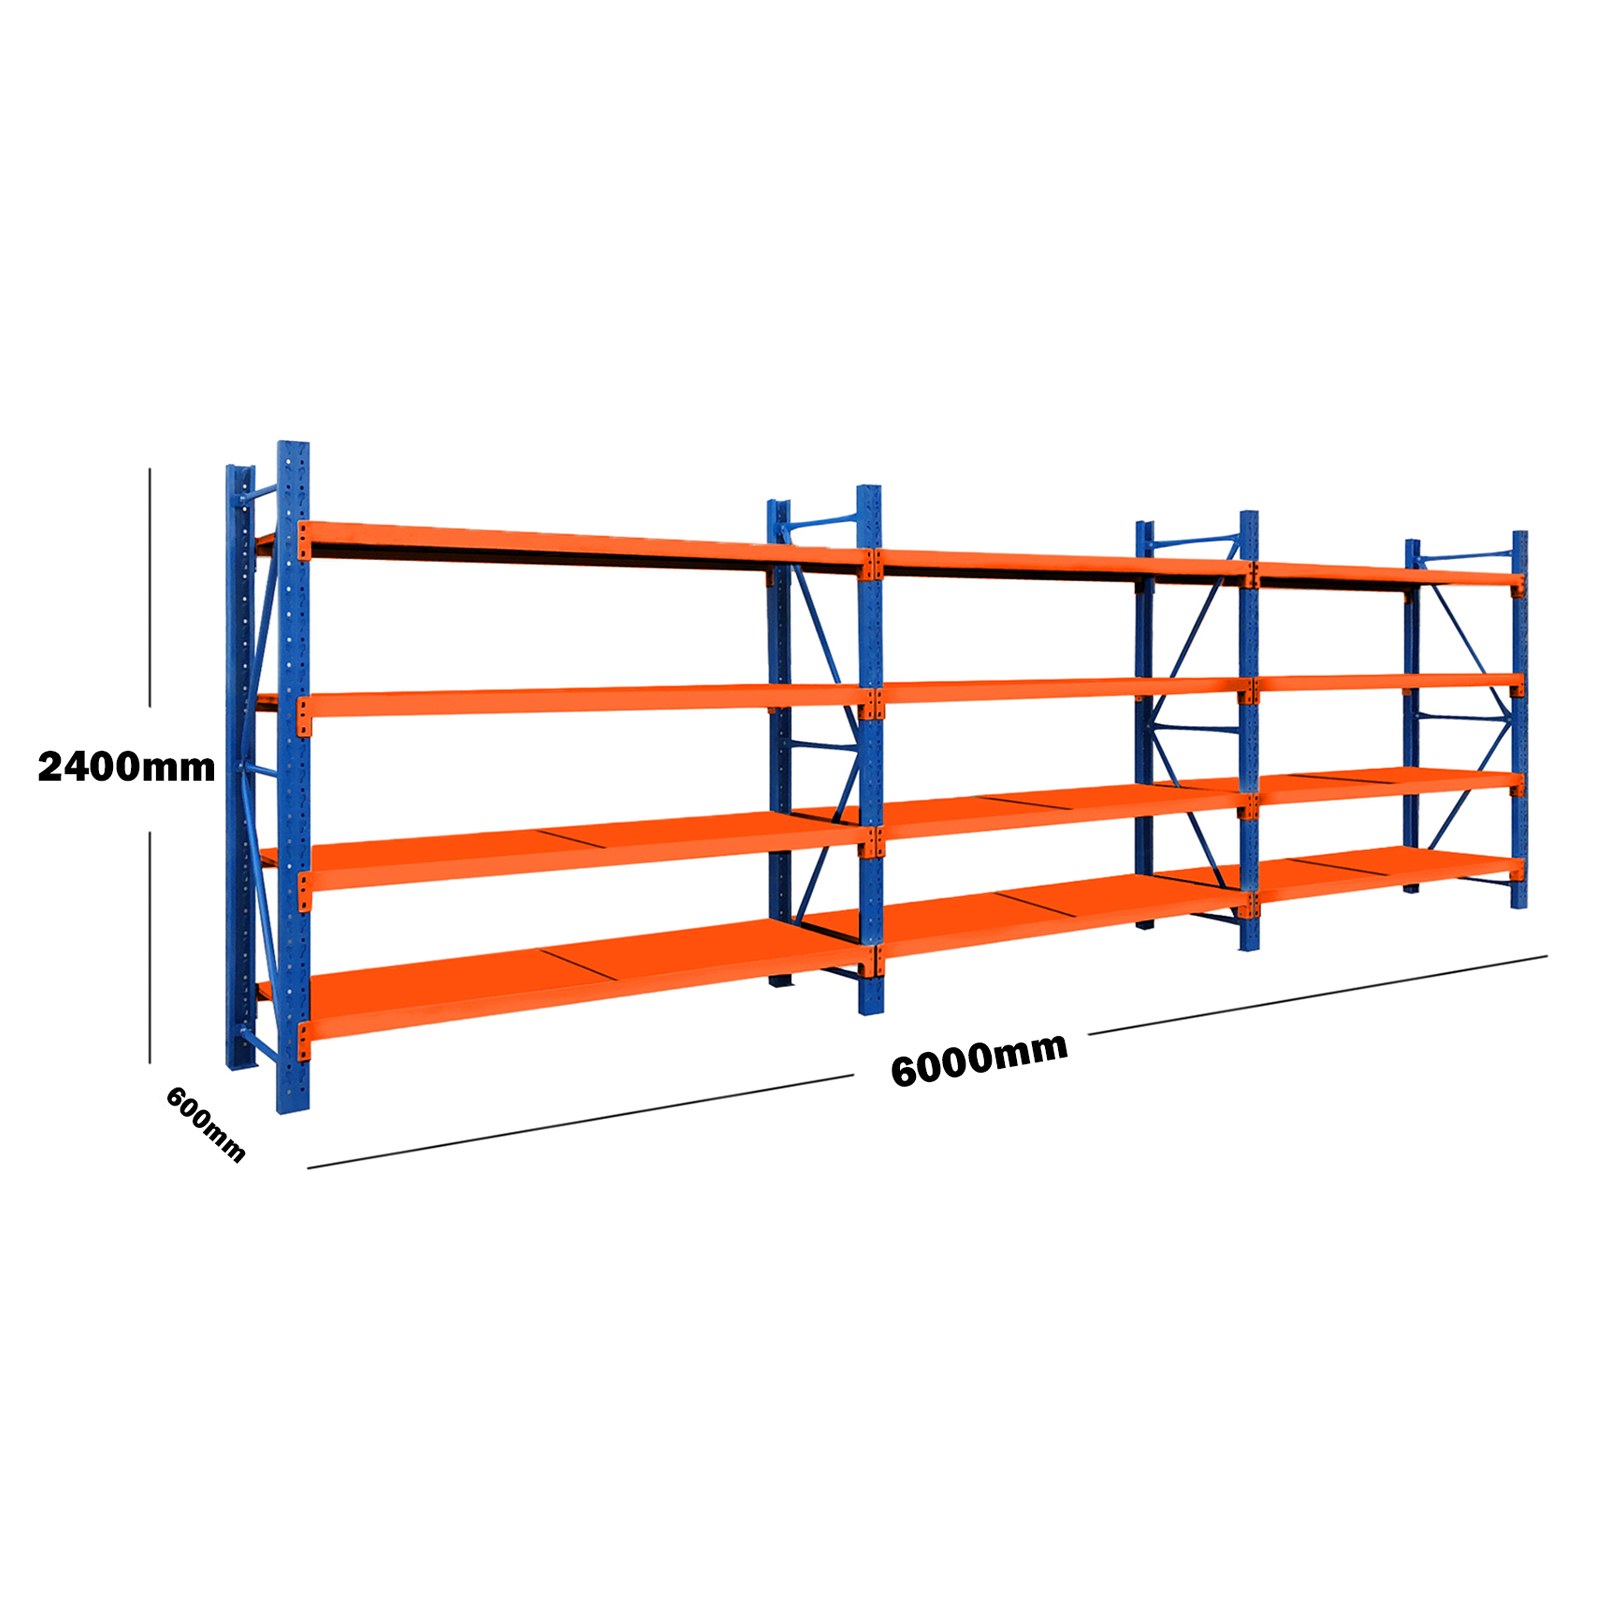 6M(L) x 2.4M(H) x 0.6M(D) Shelves Racking Metal Steel Blue & Orange 6024BO